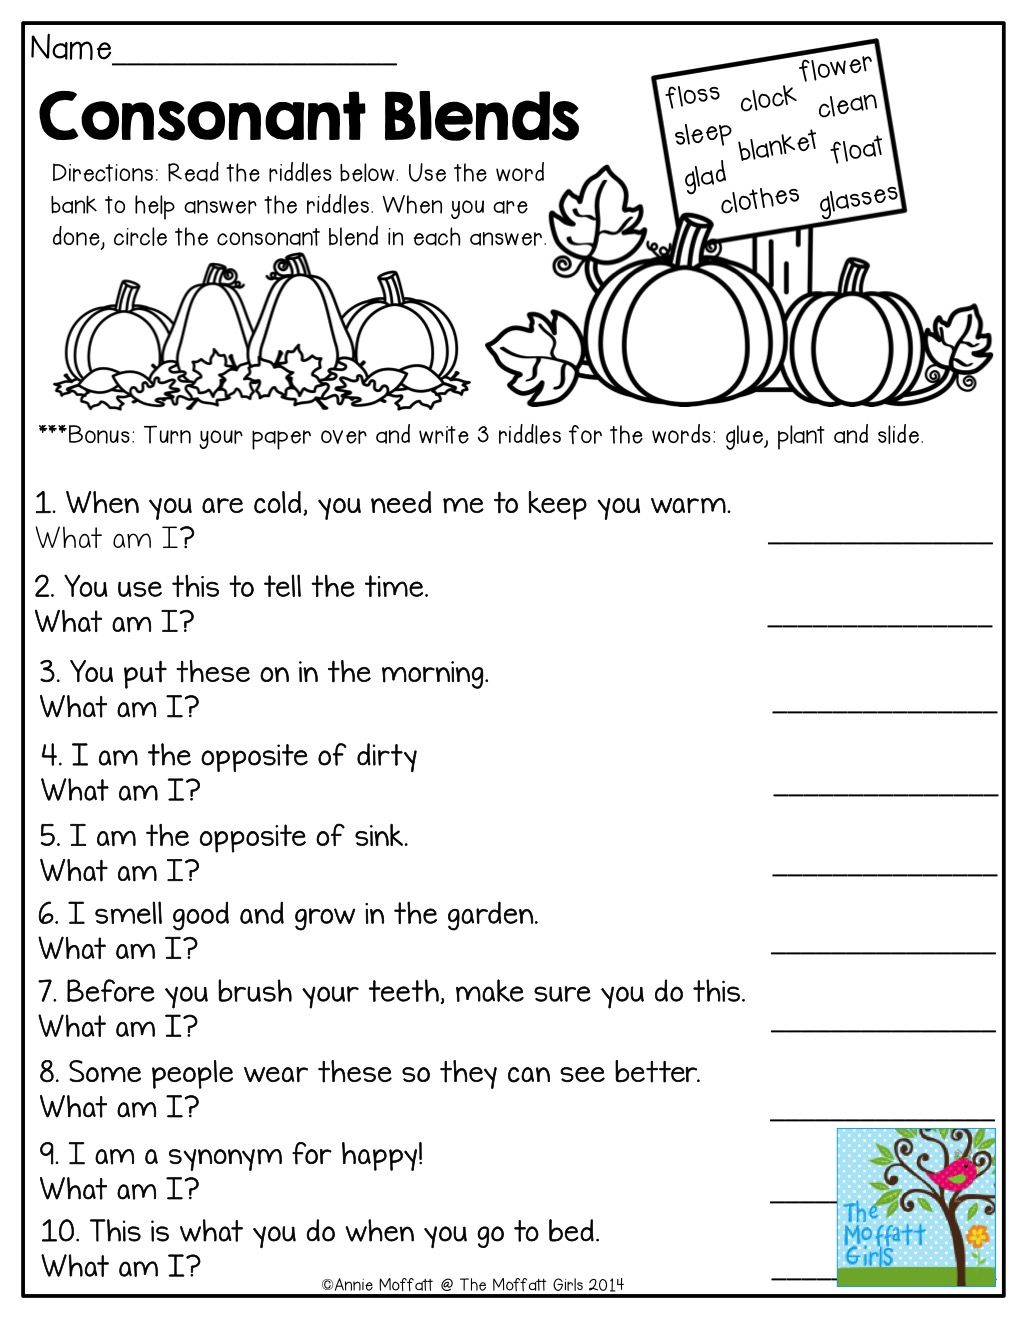 worksheet Blends Worksheets For Grade 1 consonant blends mystery words read the clues and write correct word lots of